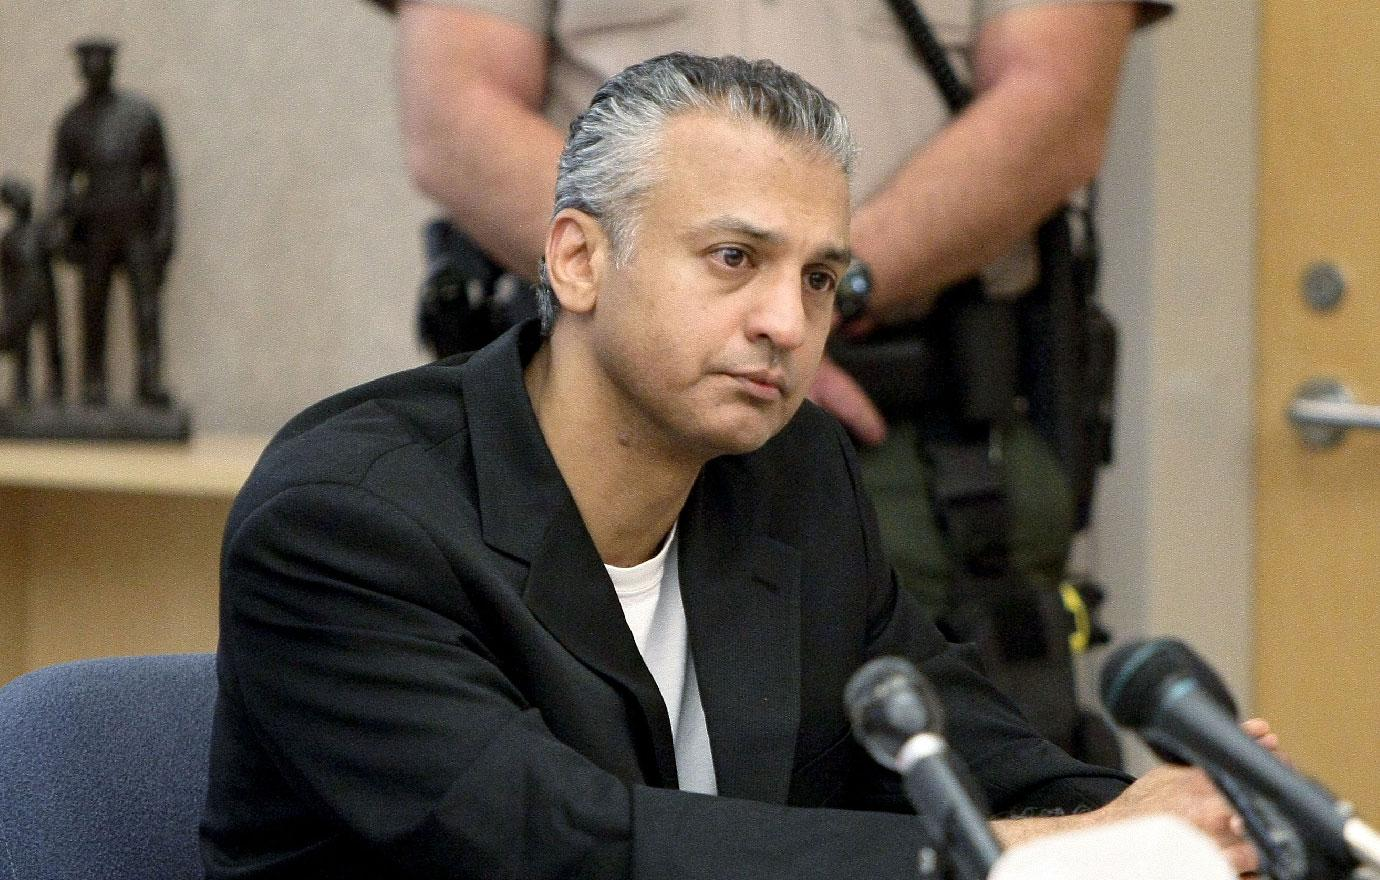 Actor Shelley Malil Released From Prison